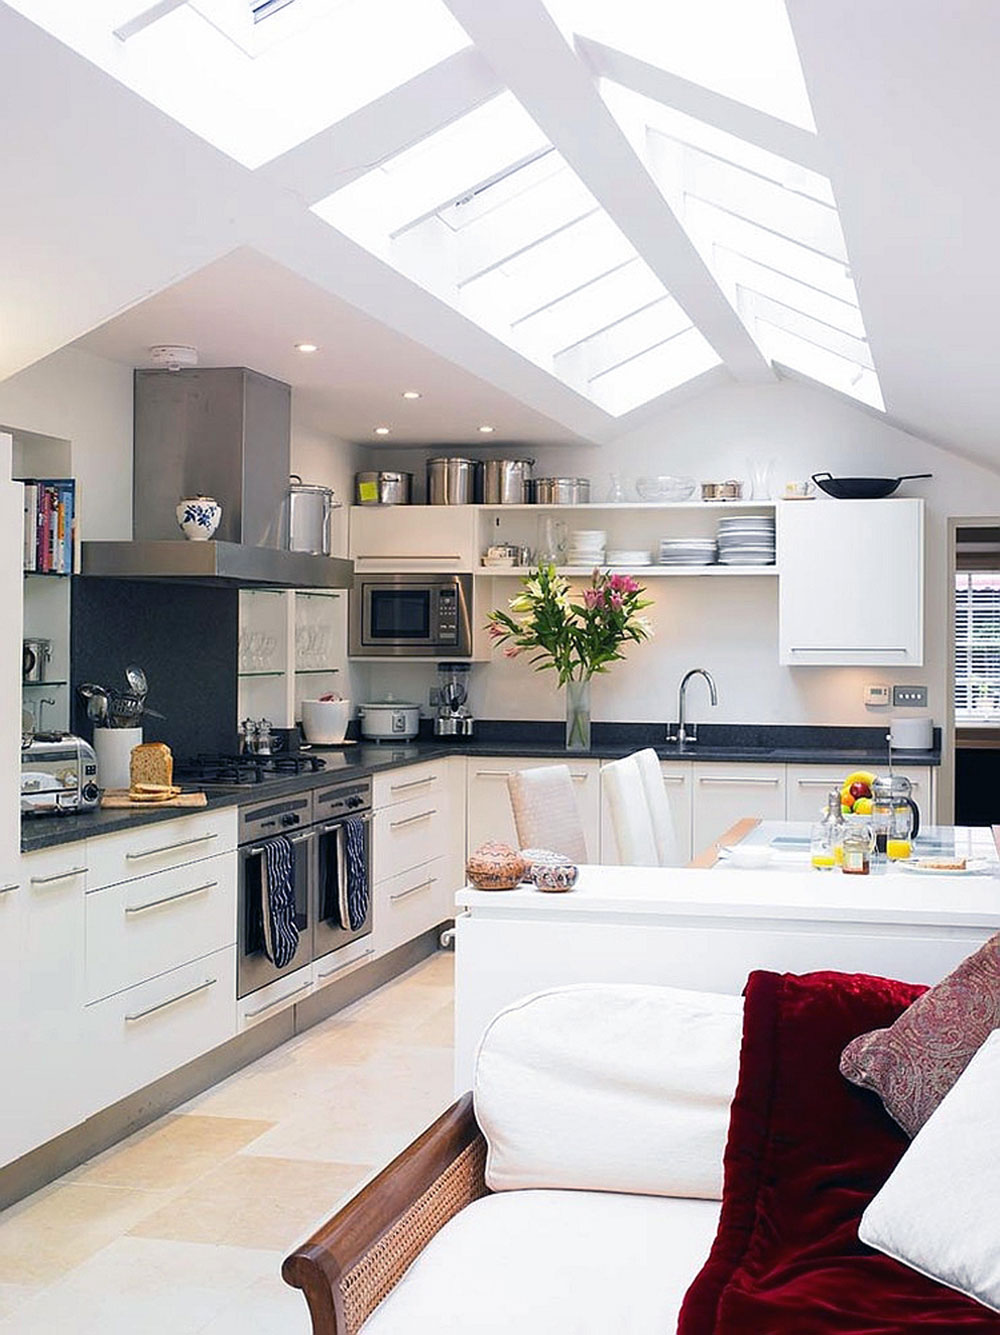 Kitchens with skylights for more natural light 2 kitchens with skylights for more natural light